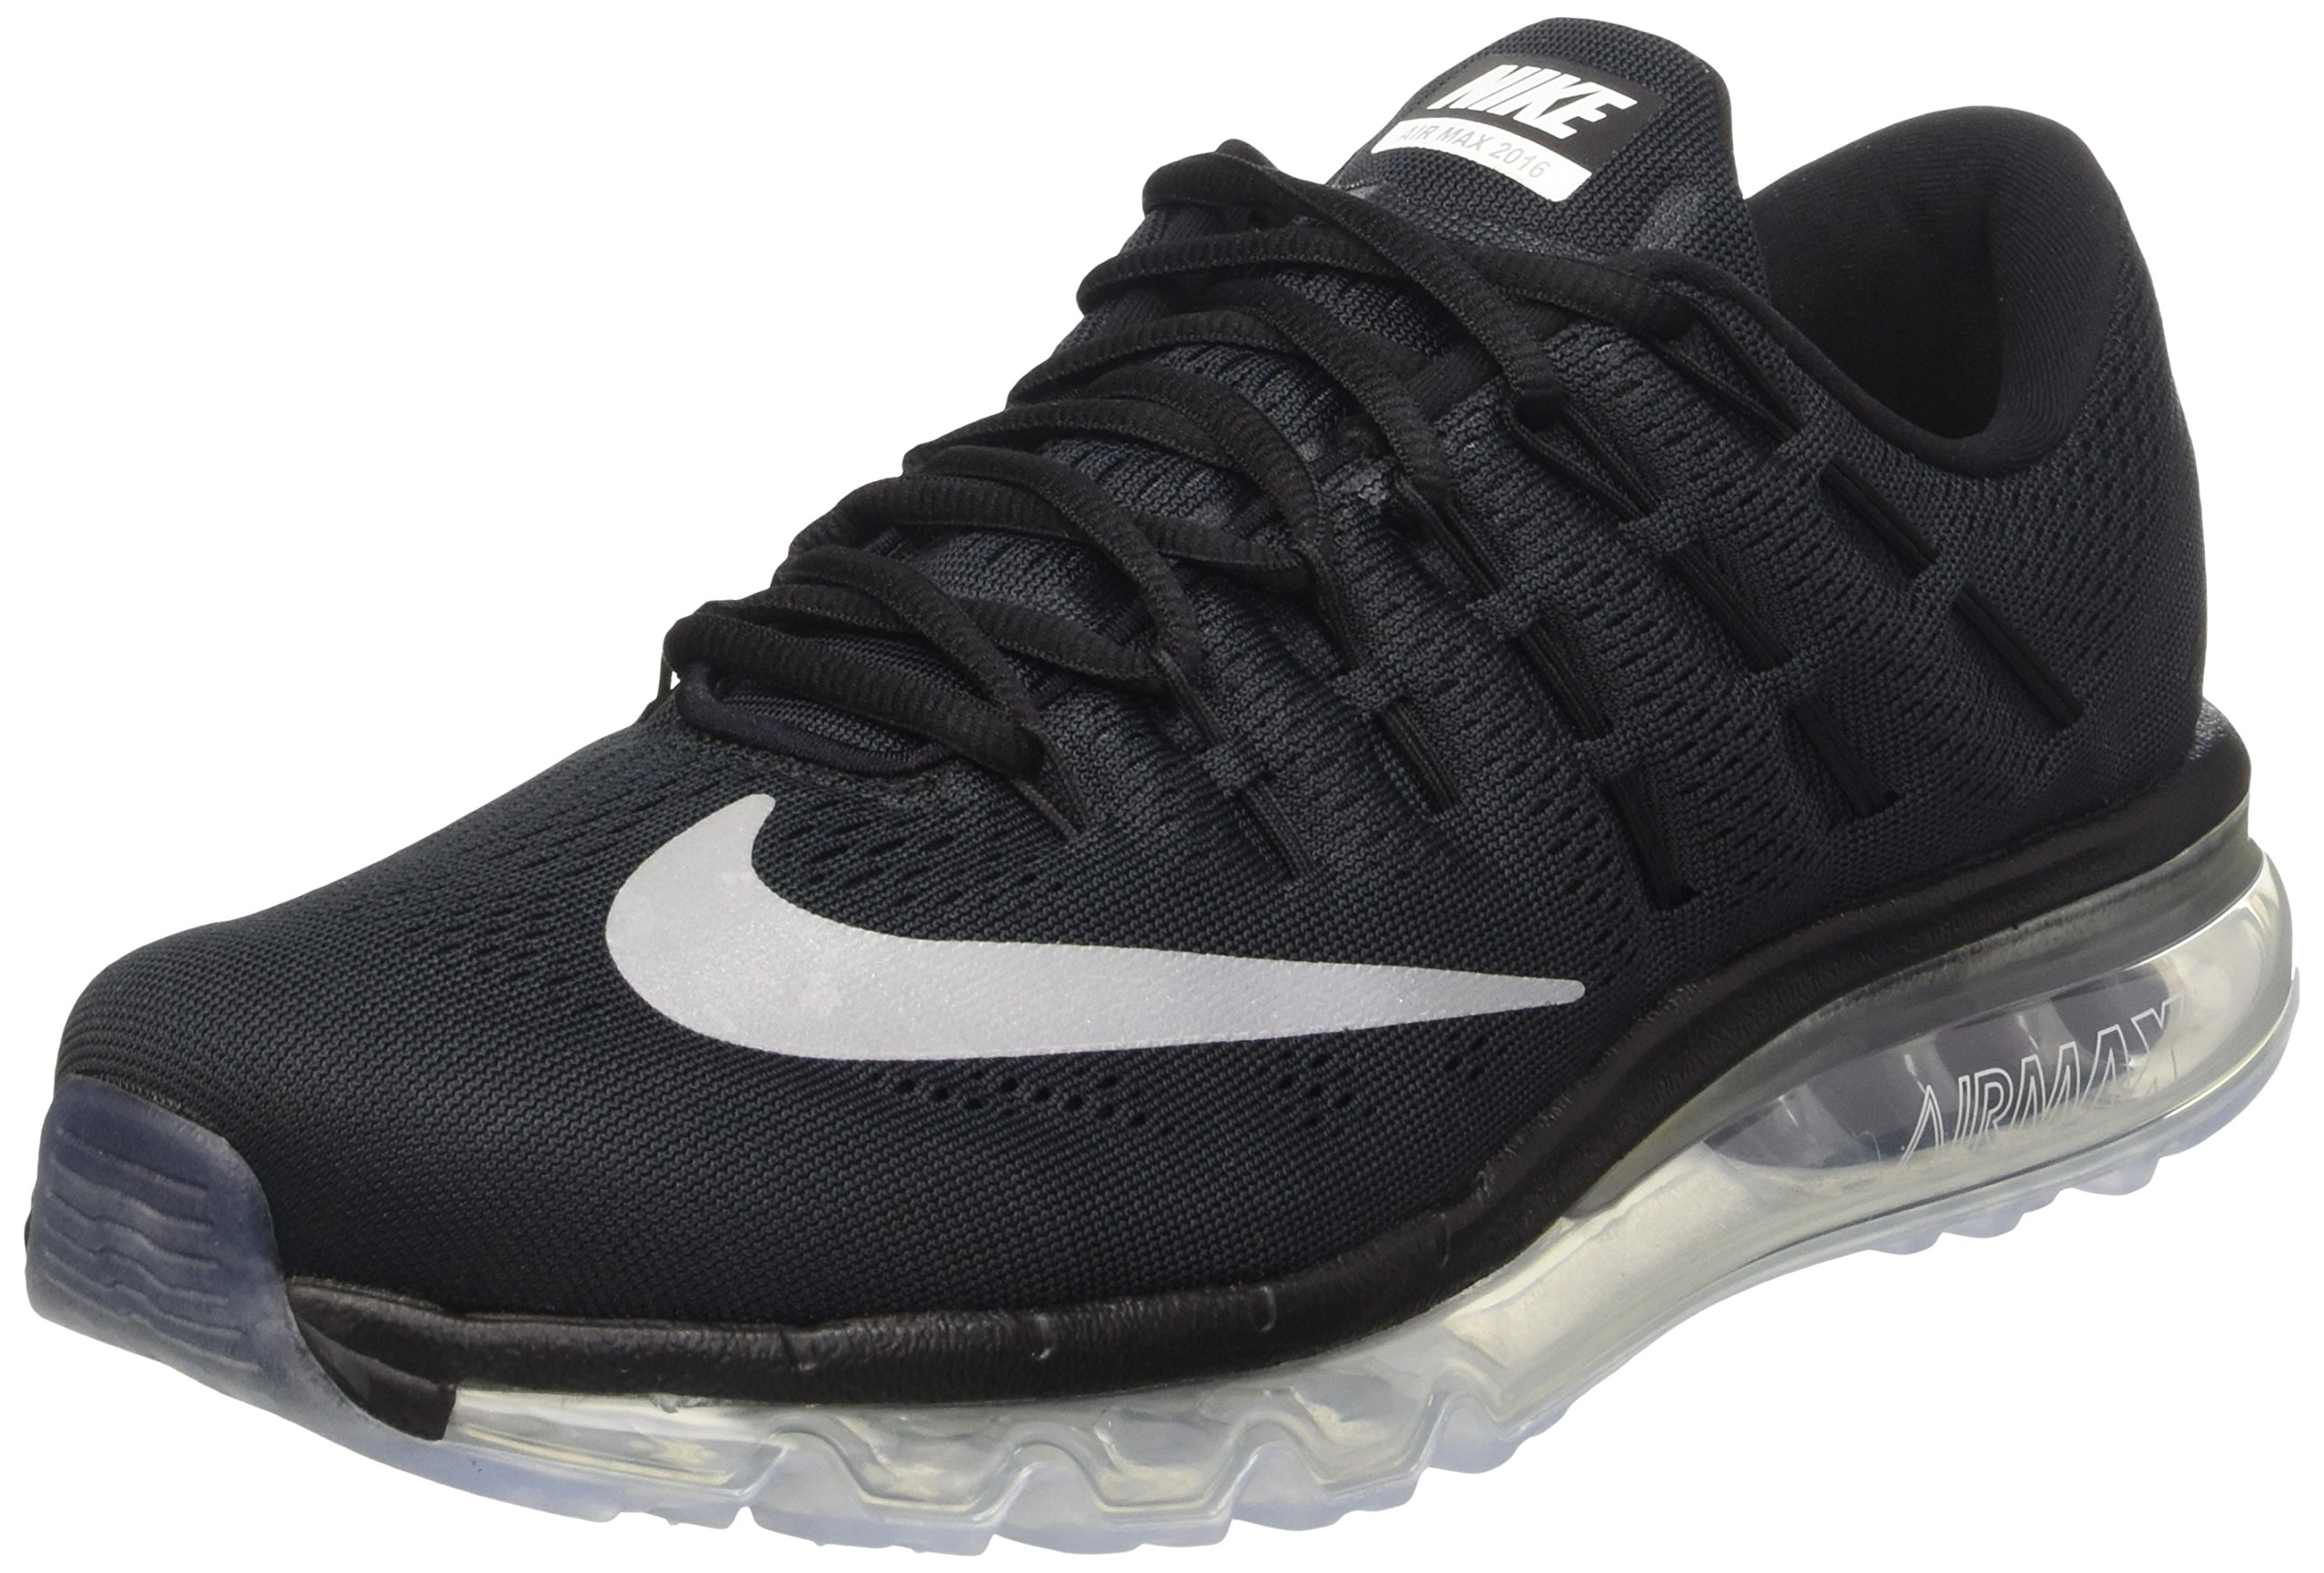 quality design f0a0d f8a5f Galleon - Nike Men s Air Max 2016 Running Shoe Black White Dark Grey Size  10 M US